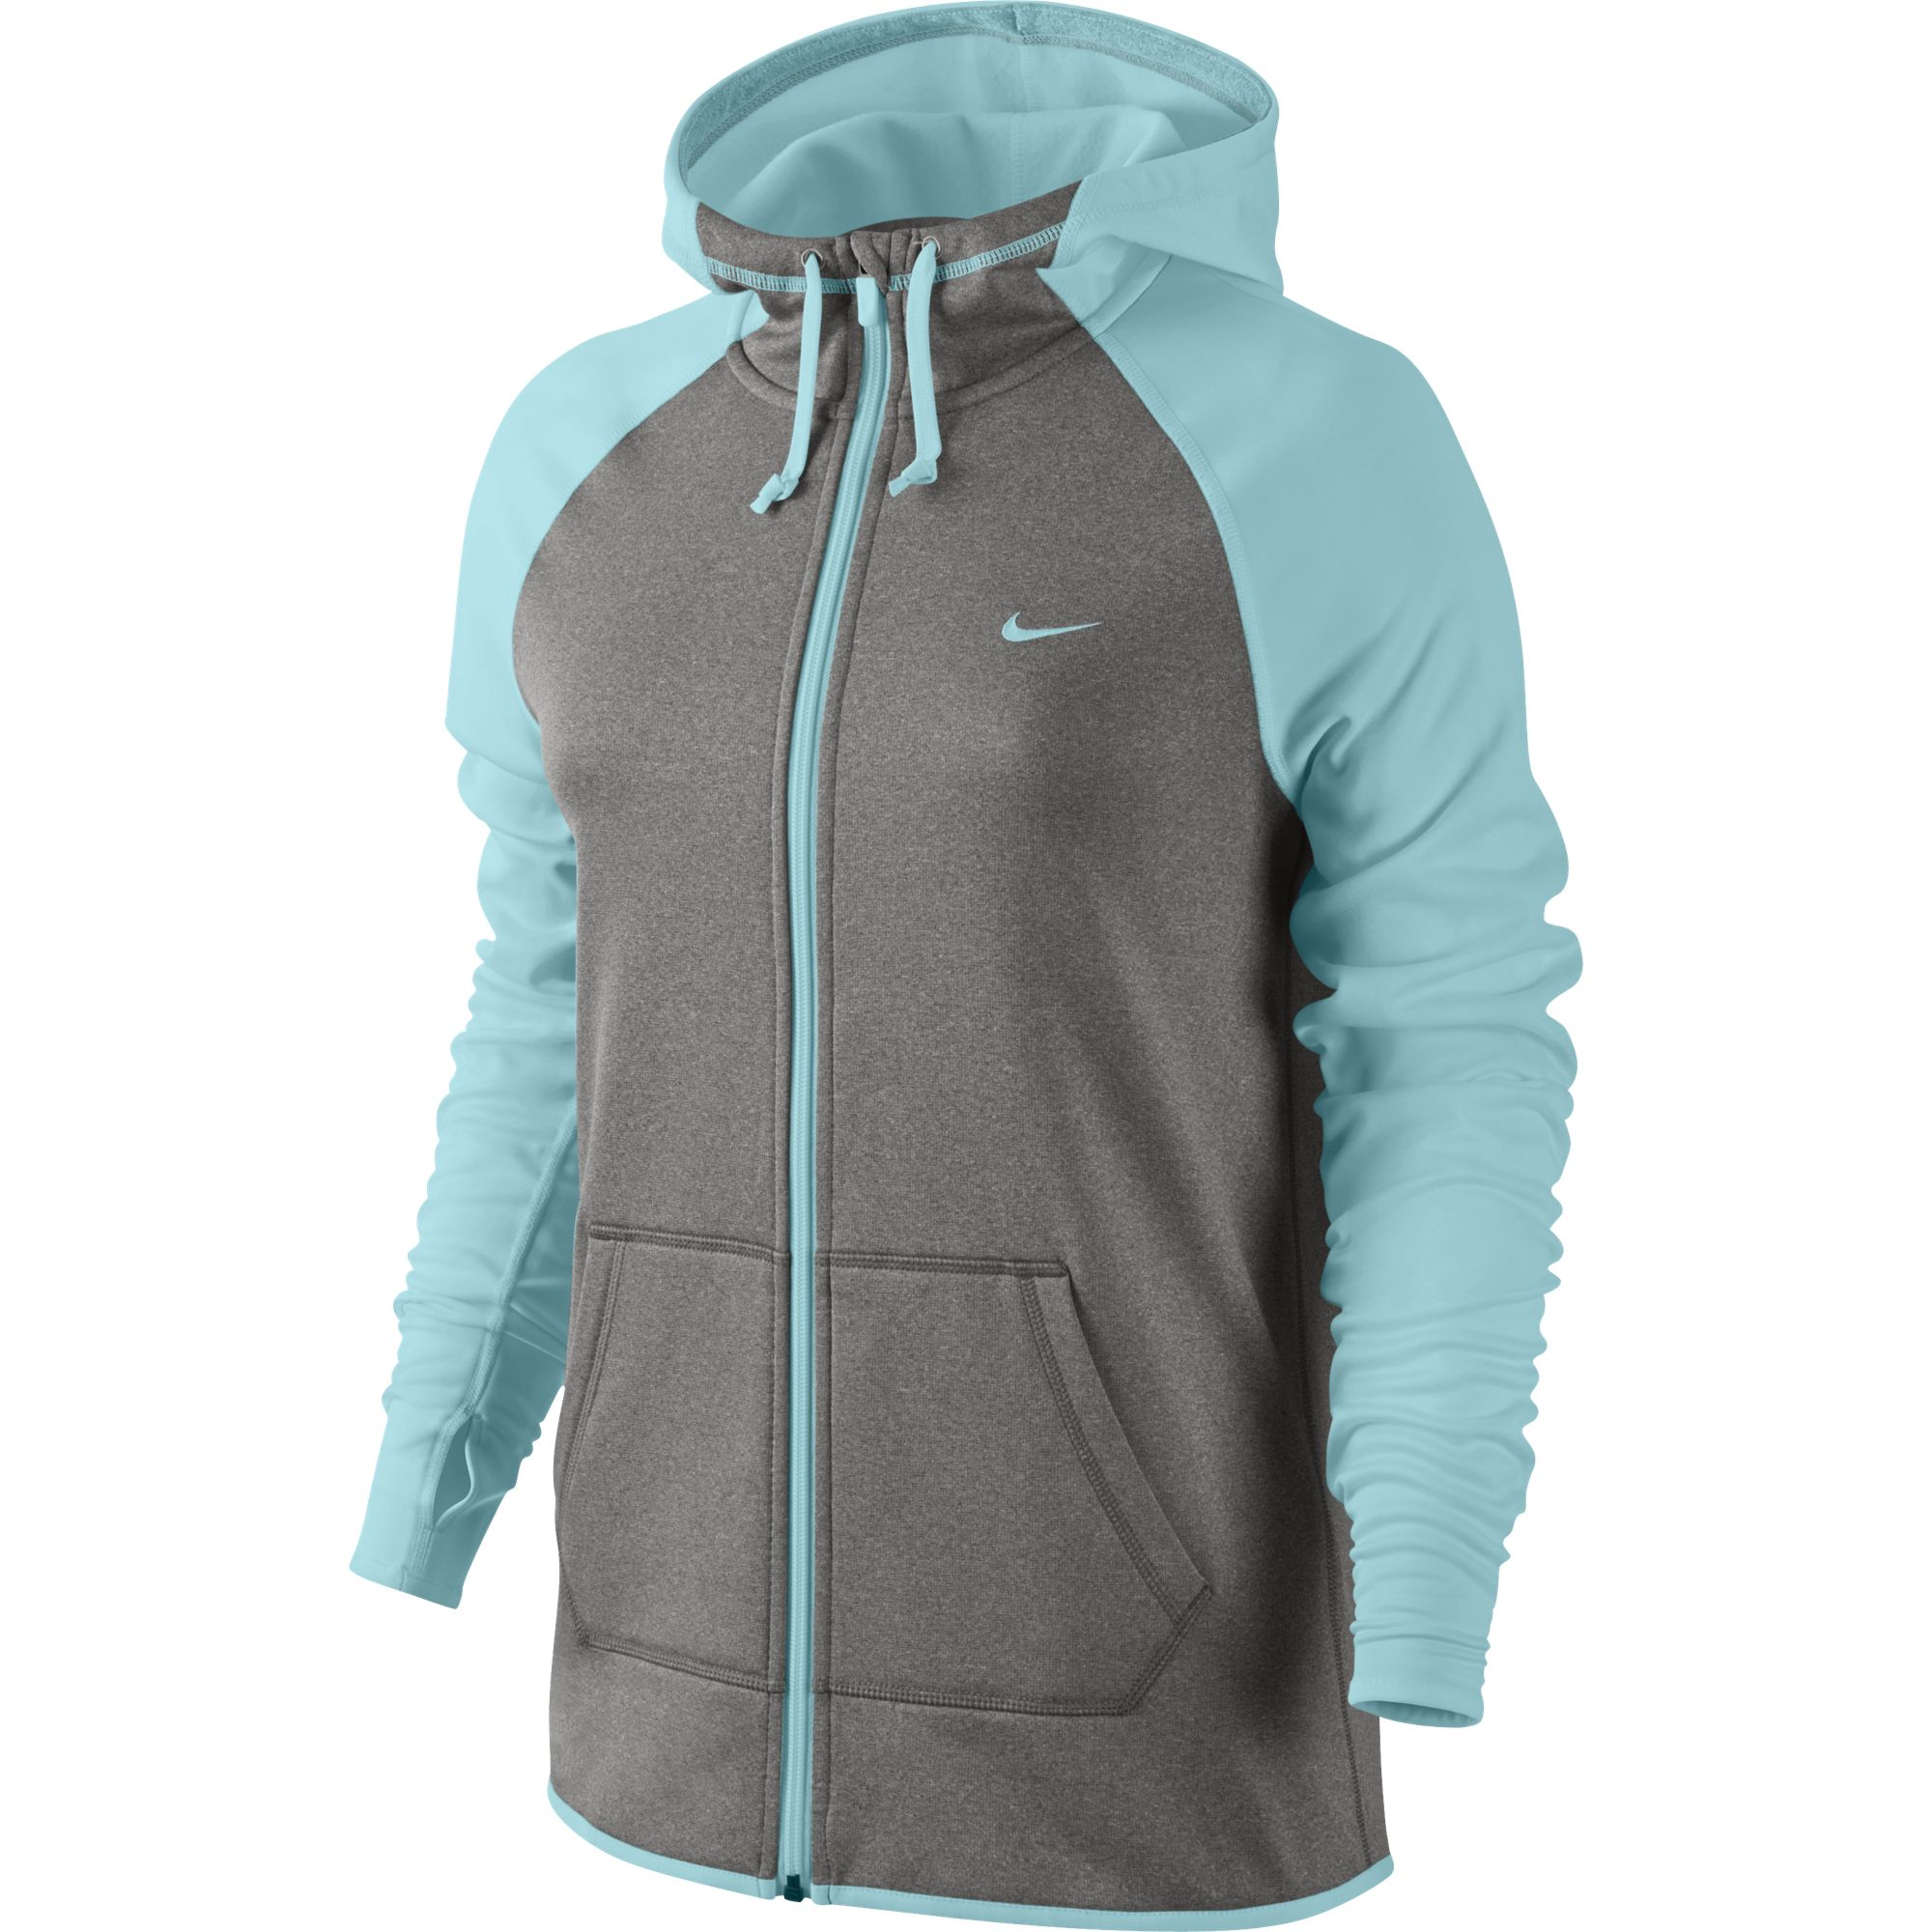 0dece92b43835 Women's Nike All Time Full-Zip Training Hoodie - Sieverts Sporting Goods